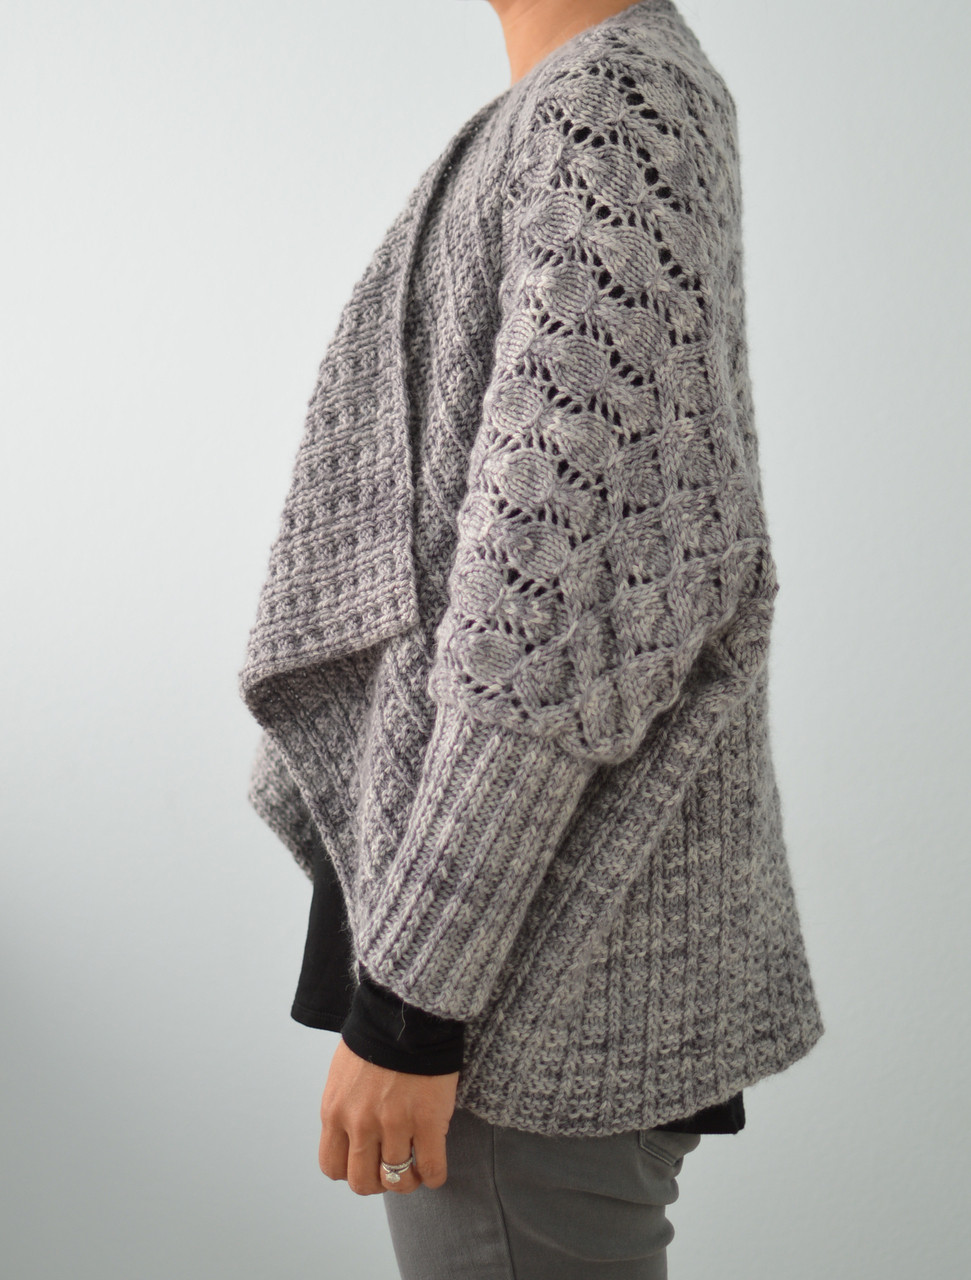 Eliza in a Cozy Cardigan Knit by Mom! - Knitting Patterns Blog from SweaterBa...